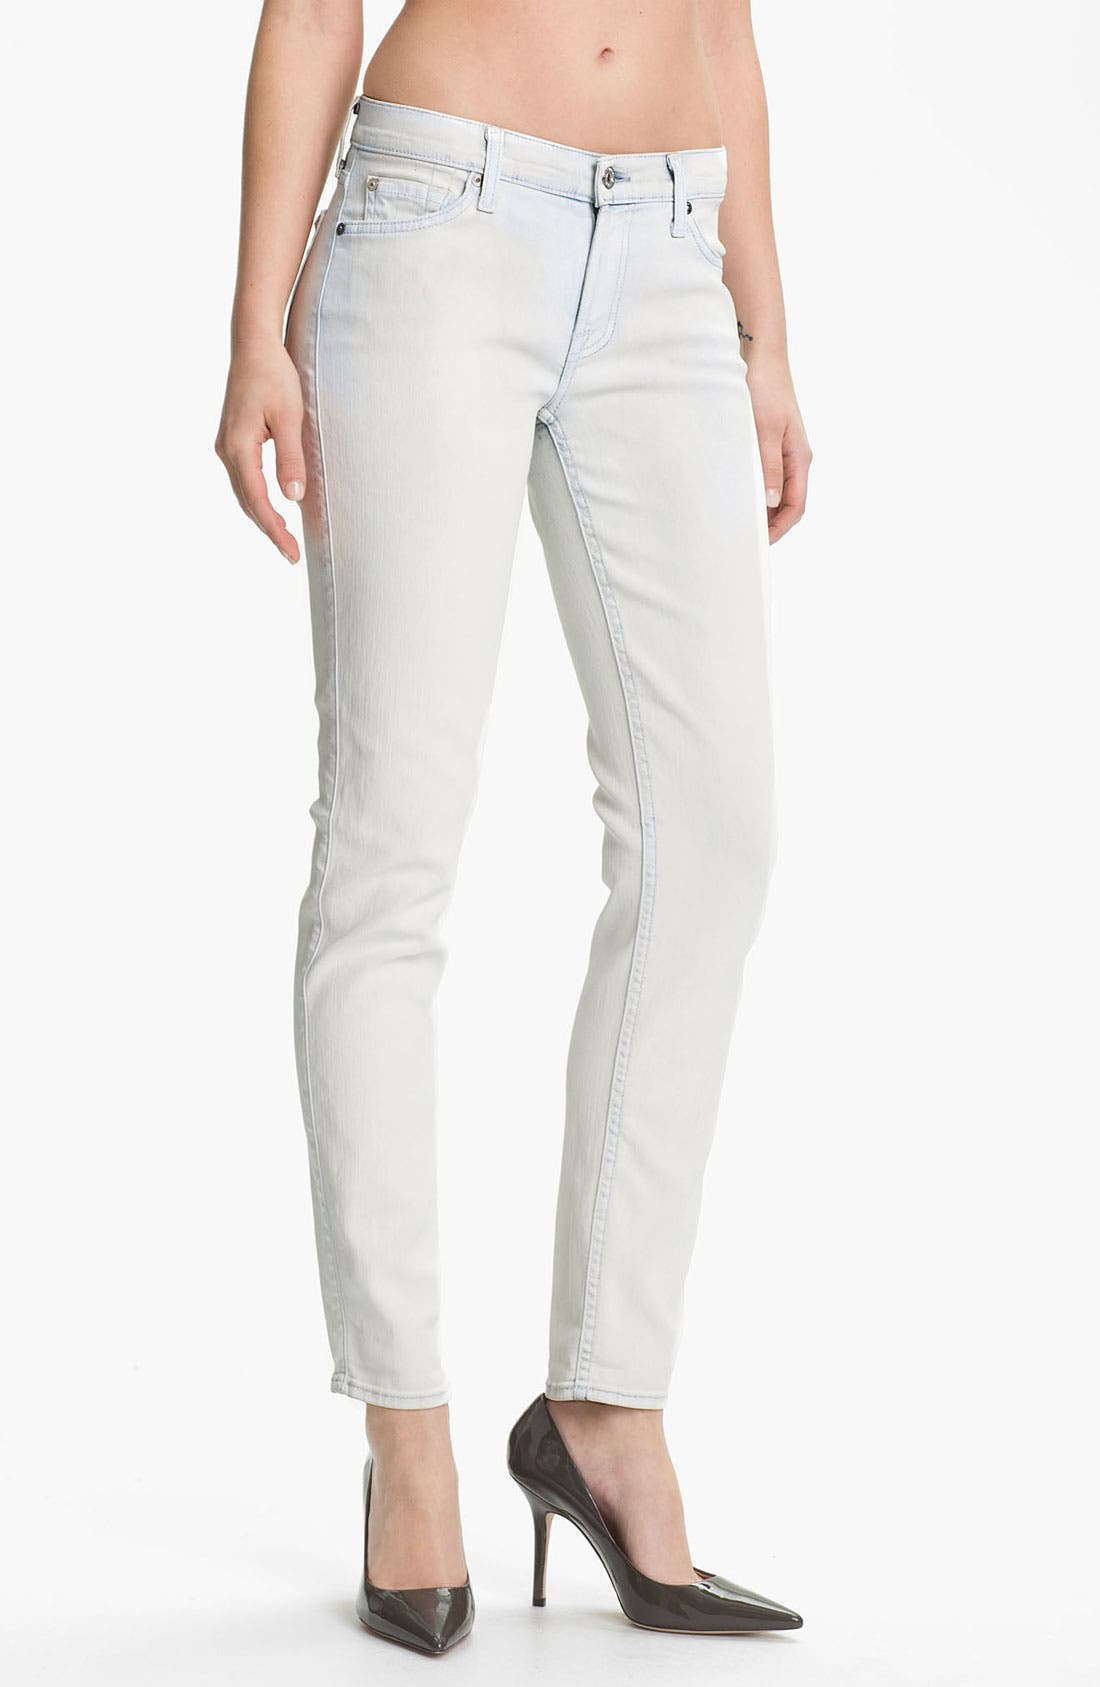 Main Image - 7 For All Mankind® 'The Slim Cigarette' Coated Stretch Jeans (White Washed Denim)